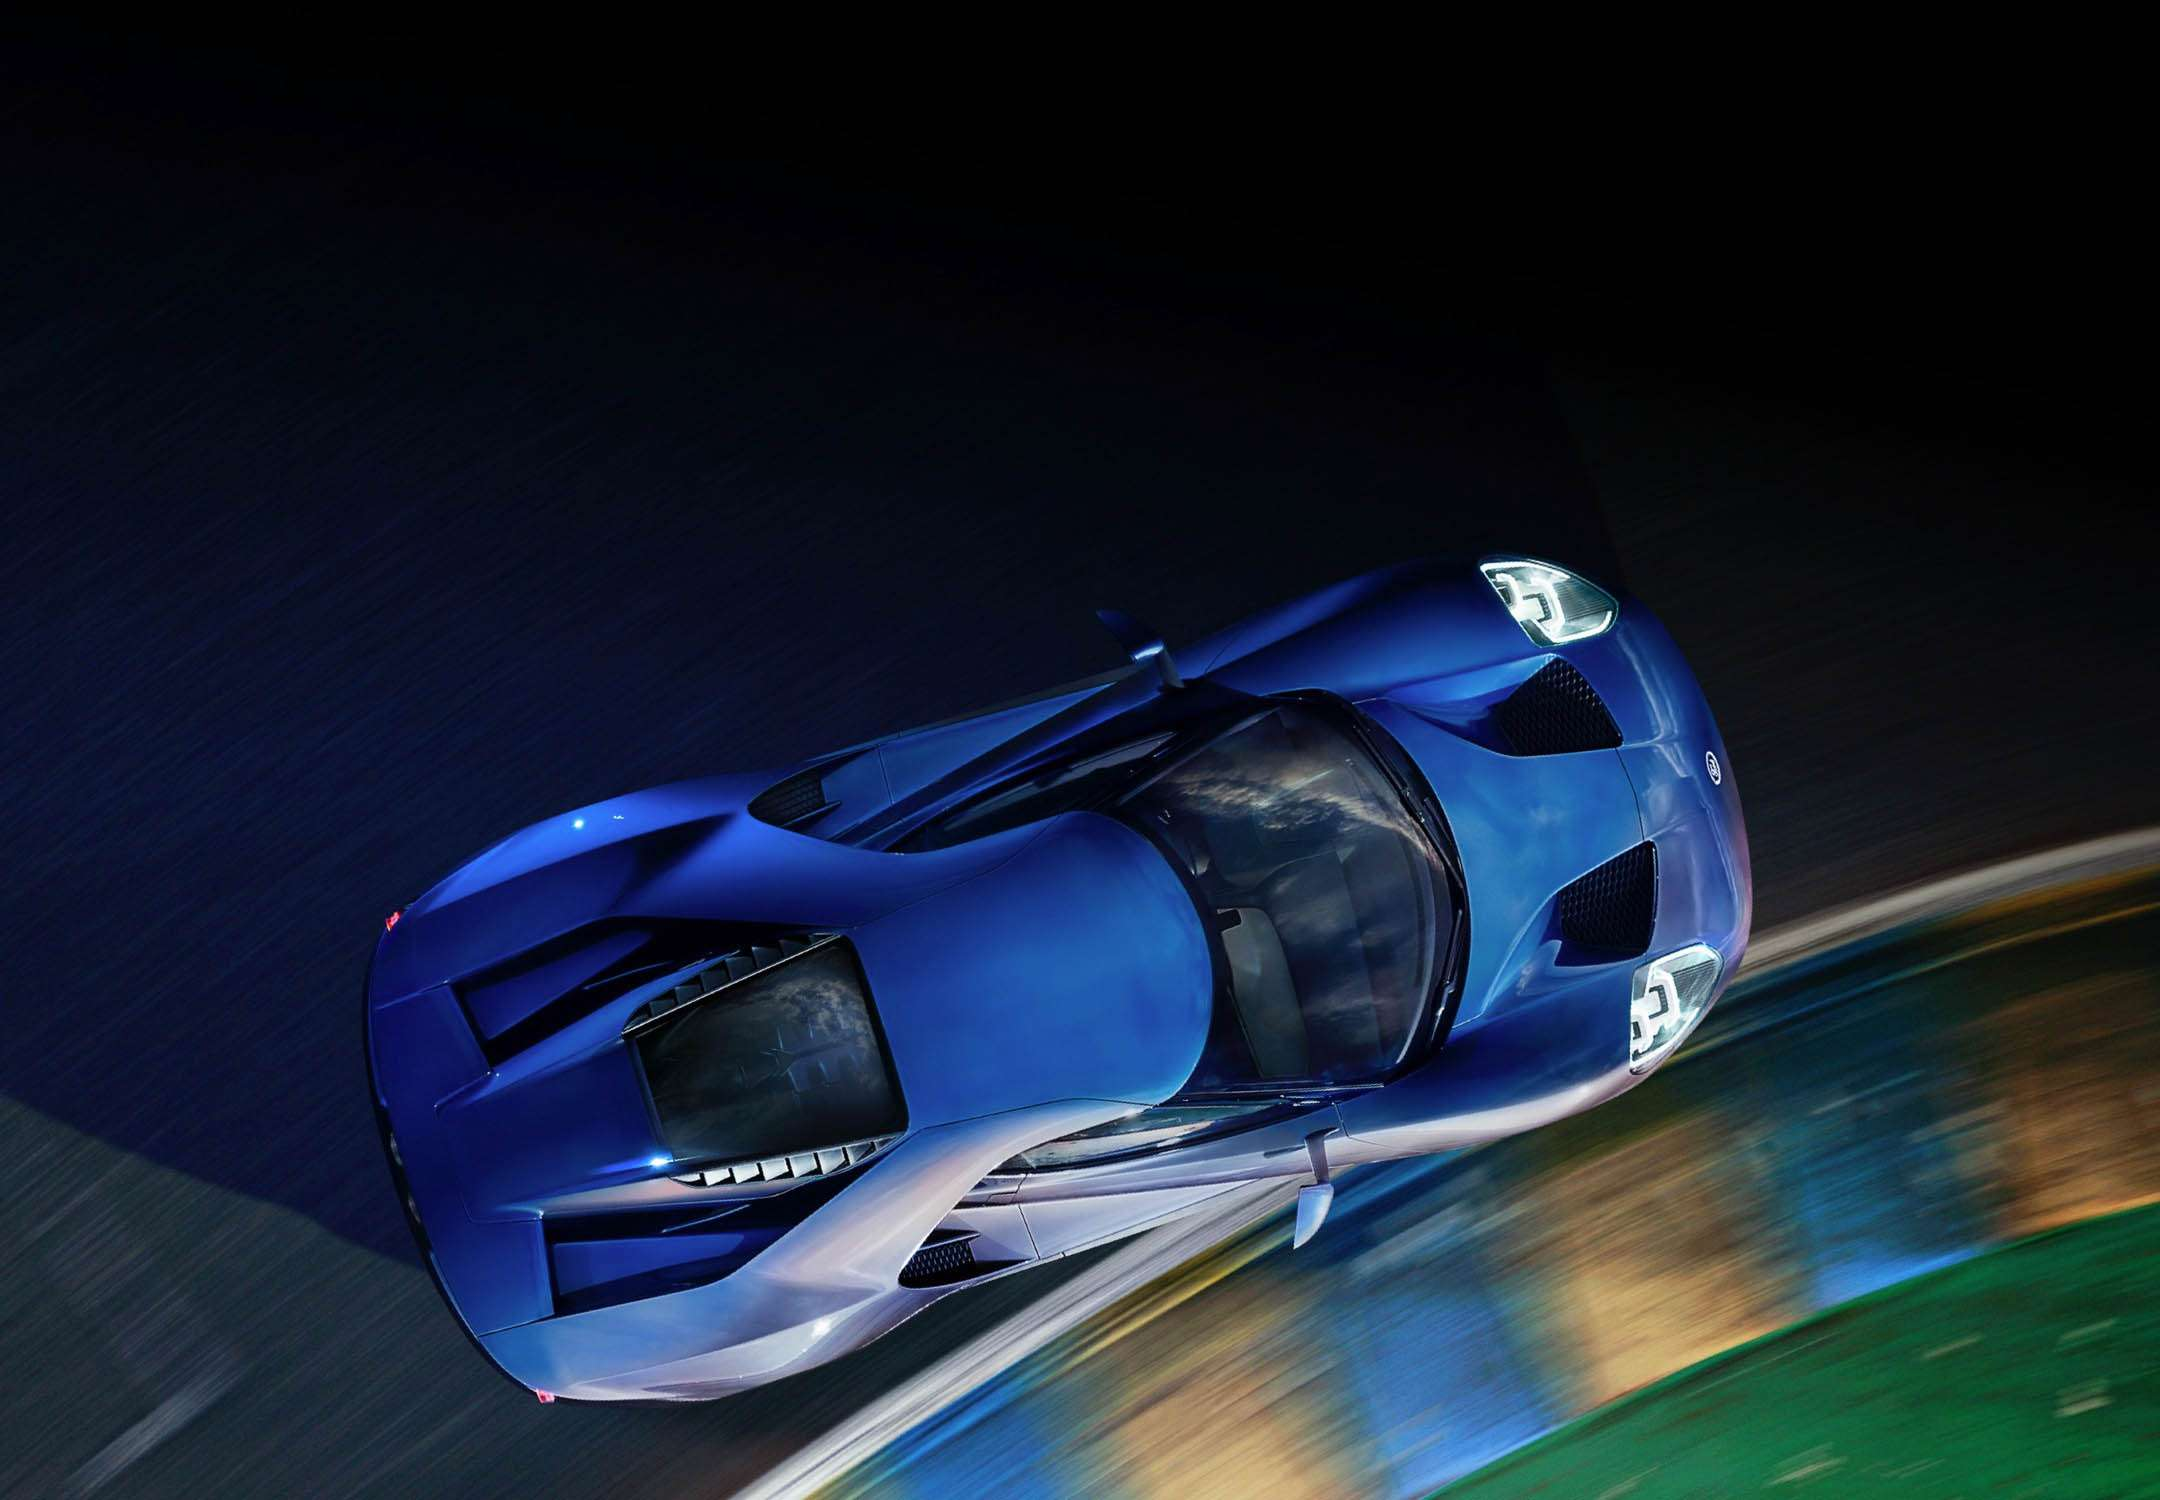 The Production Ford Gt Shares A Great Deal With The High Performance Track Version With Advanced Aero And Suspension Features Added That Take It To Another